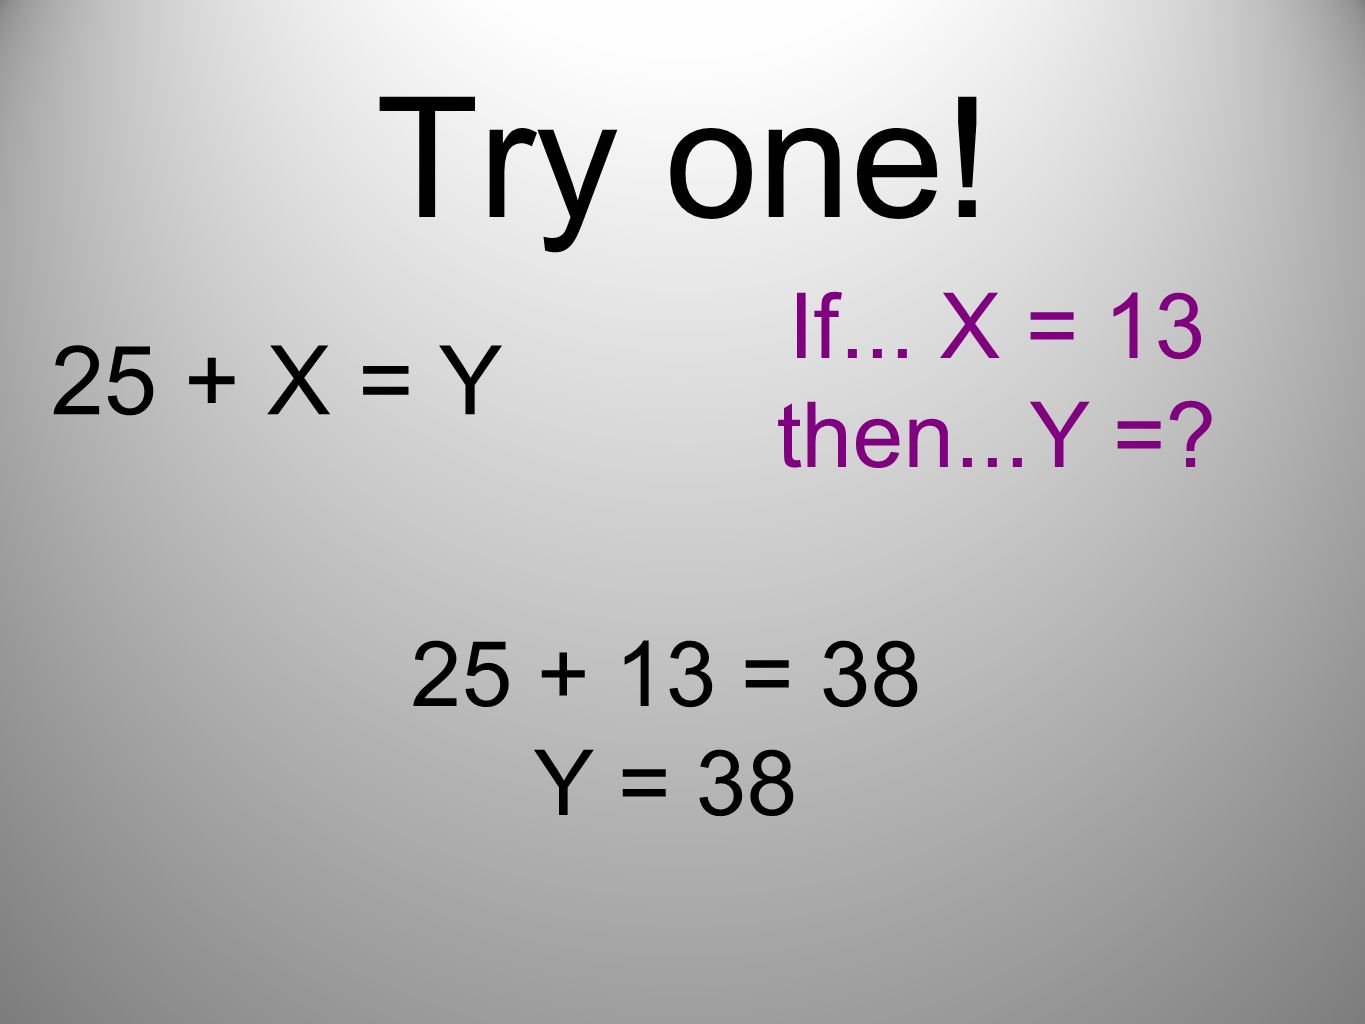 Try one! If... X = 13 then...Y = 25 + X = Y 25 + 13 = 38 Y = 38